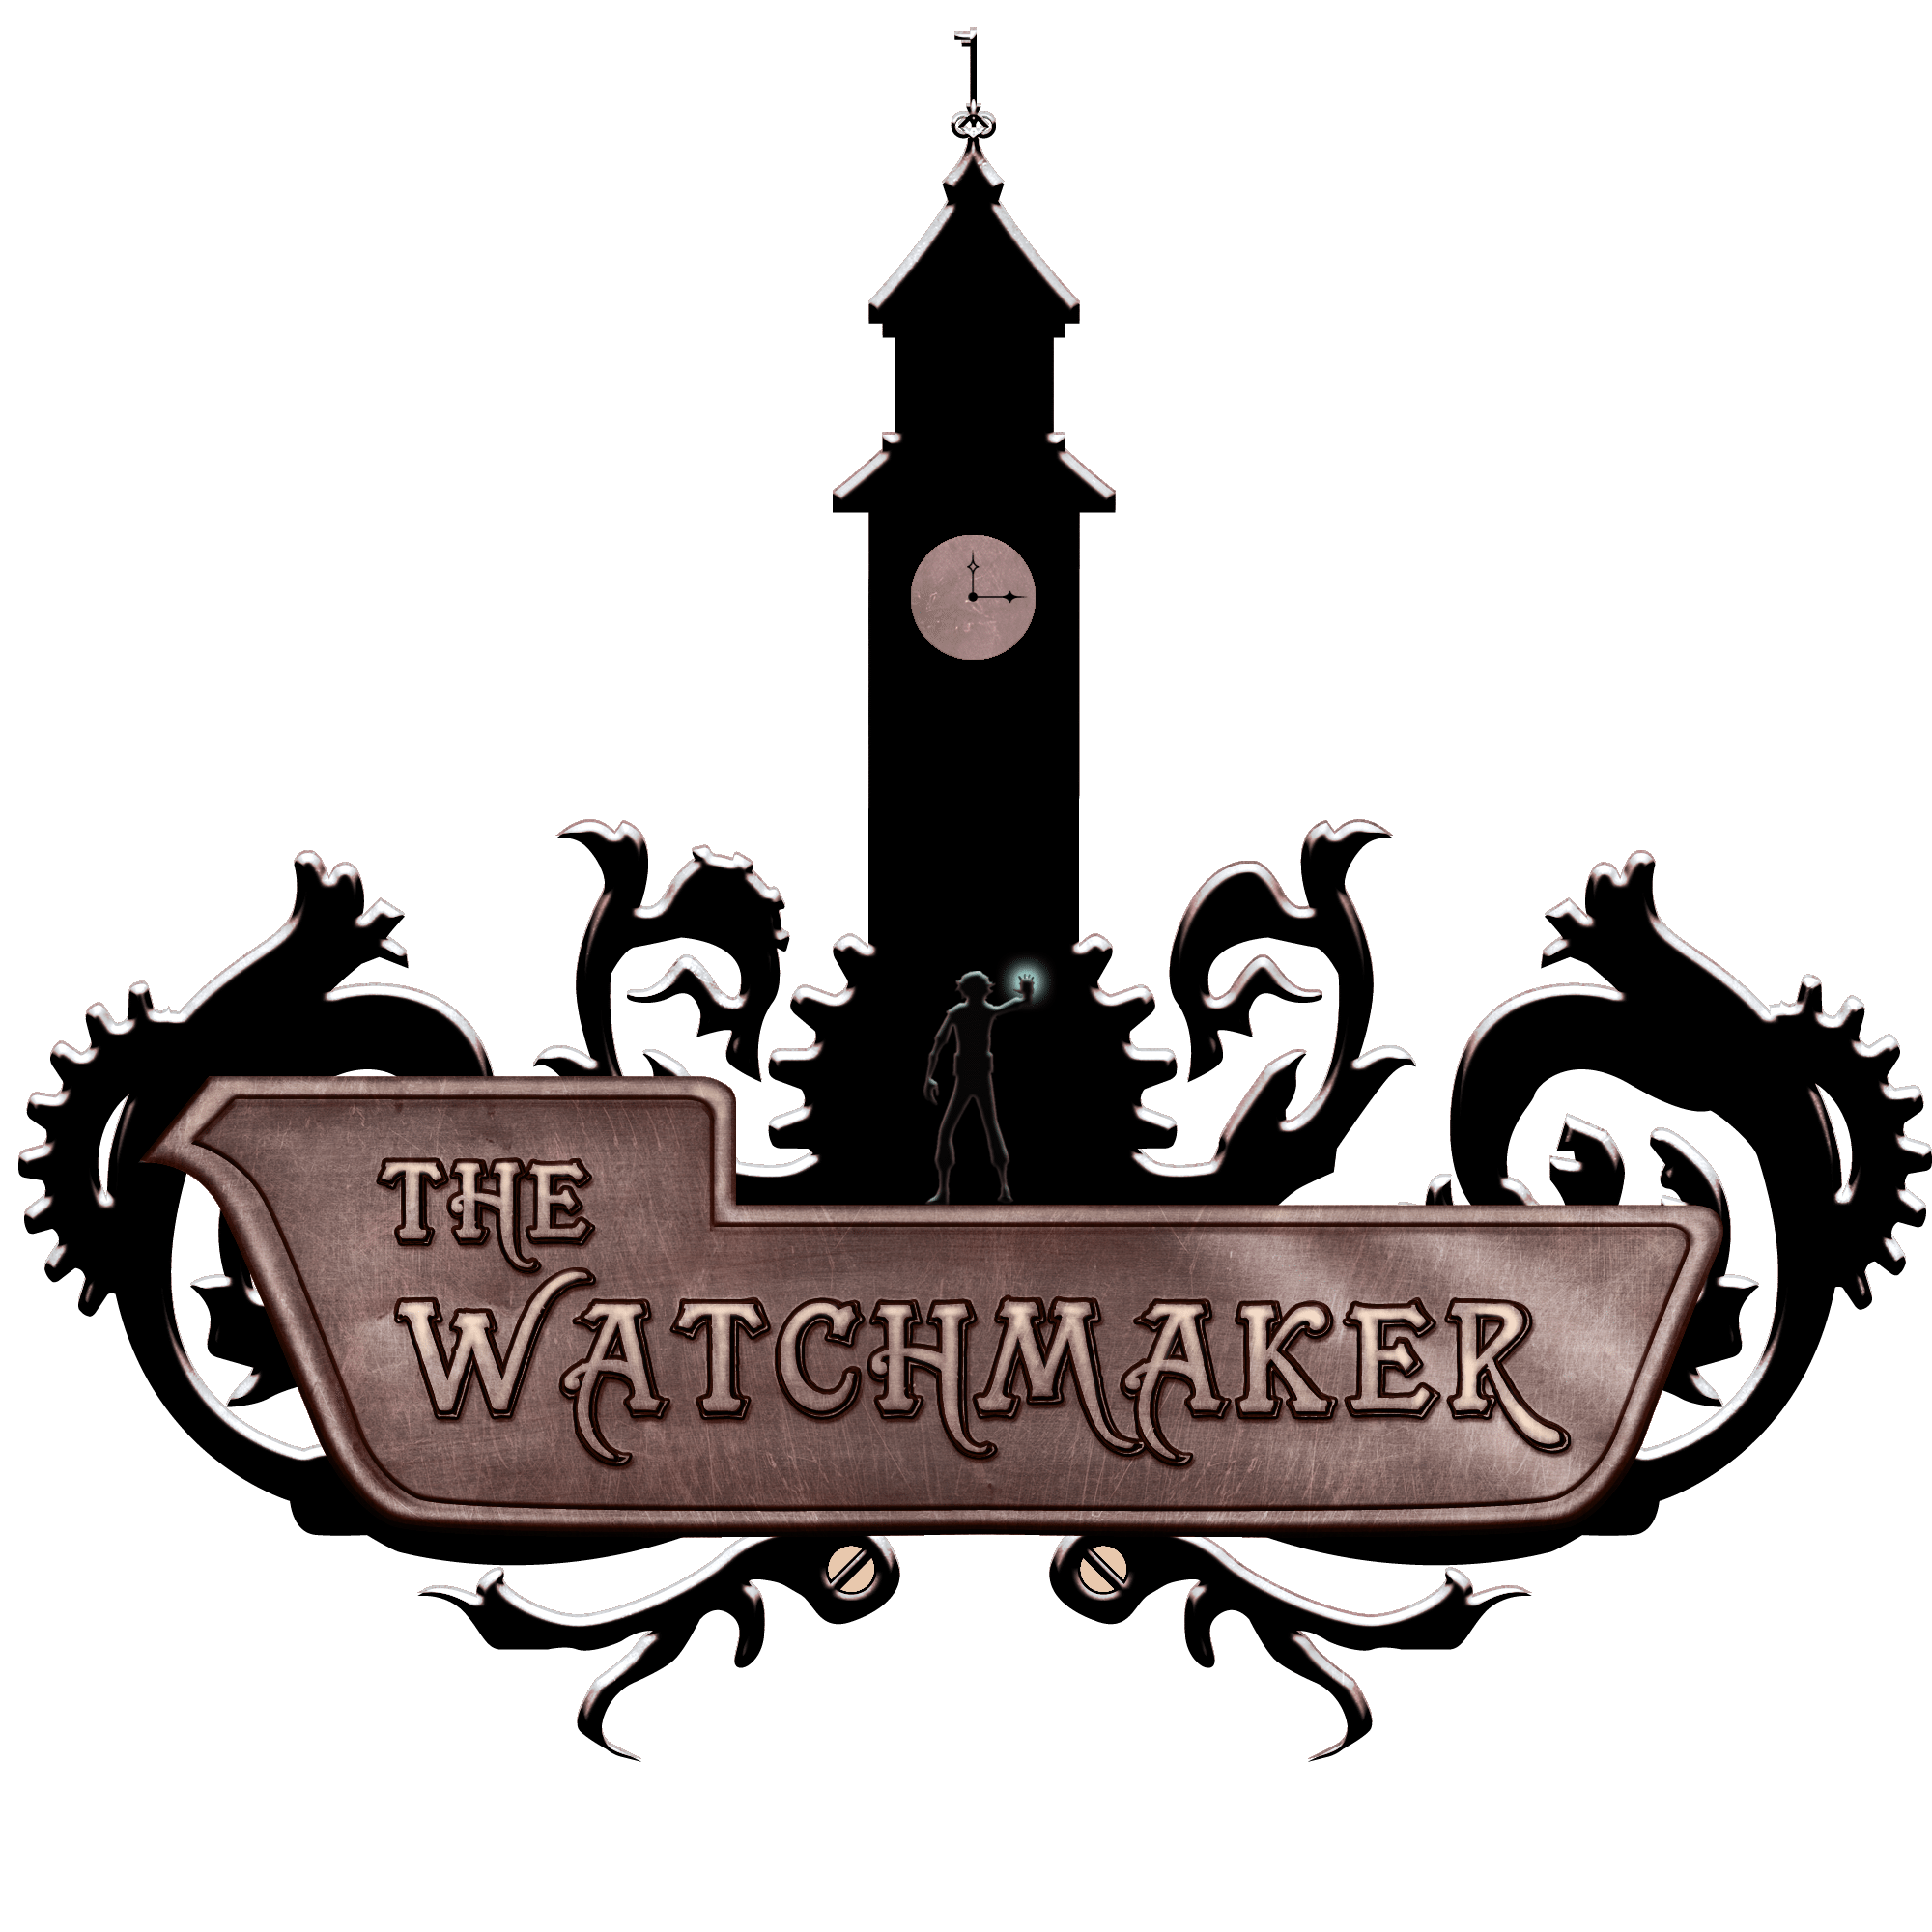 The Watchmaker is Heading to Consoles and PC